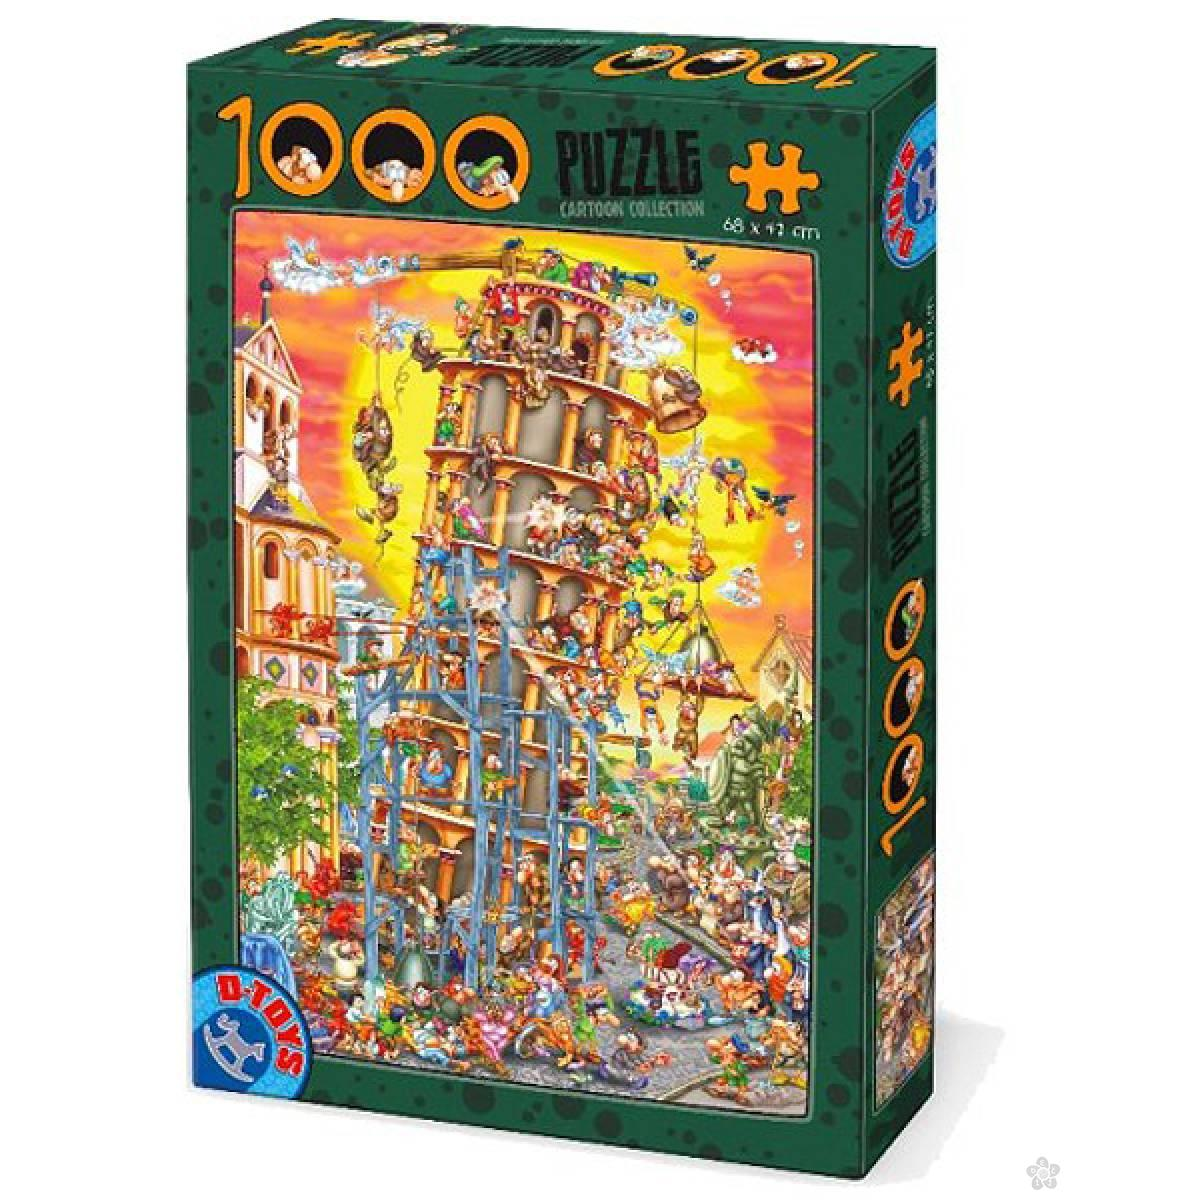 Puzzla Cartoon collection Tower of Pisa 07/61218-01